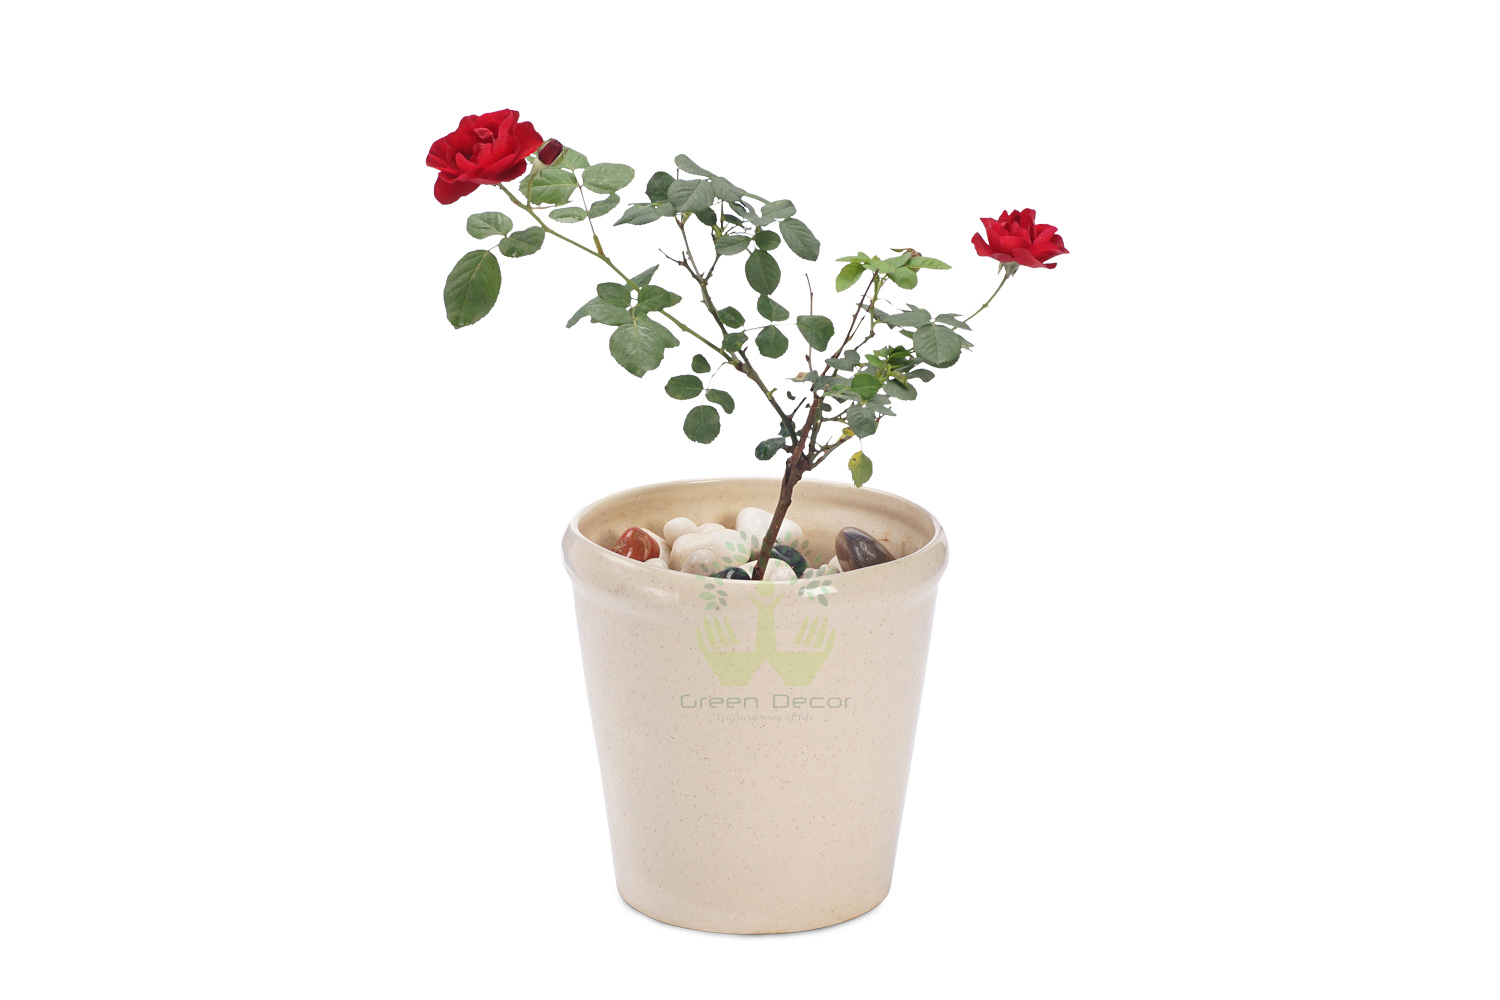 Buy Damascus Scented Rose Plants , White Pots and seeds in Delhi NCR by the best online nursery shop Greendecor.